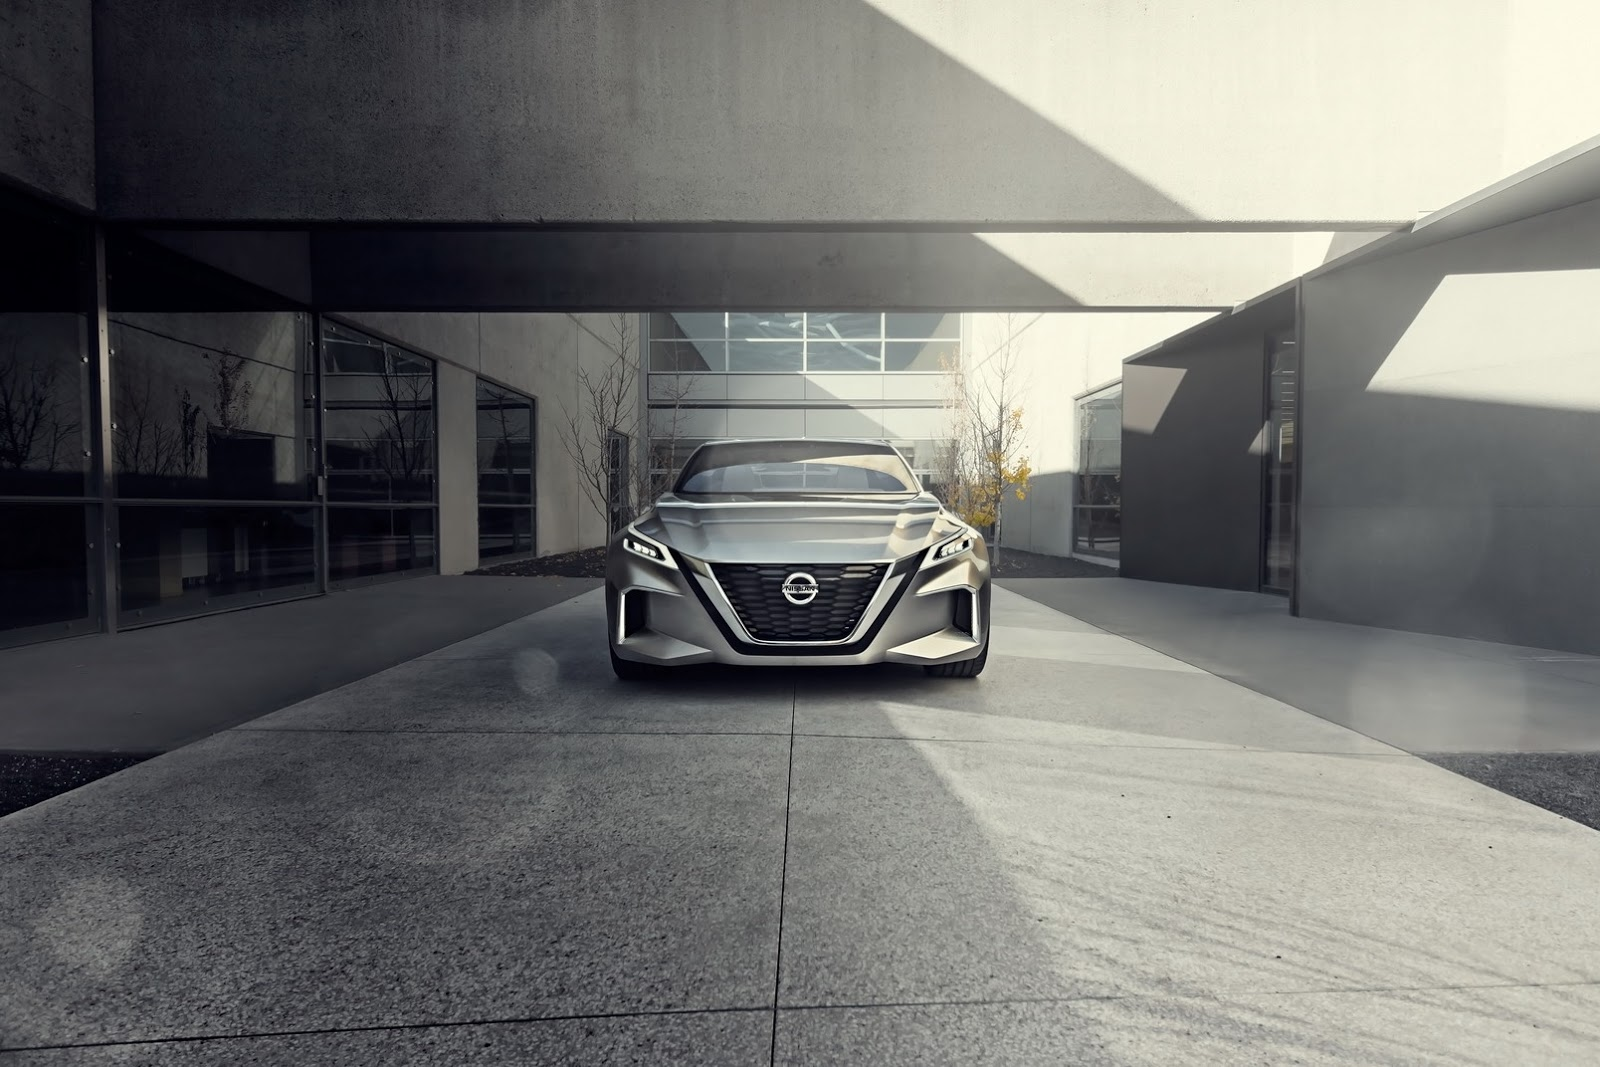 Nissan Vmotion 2.0 concept (6)